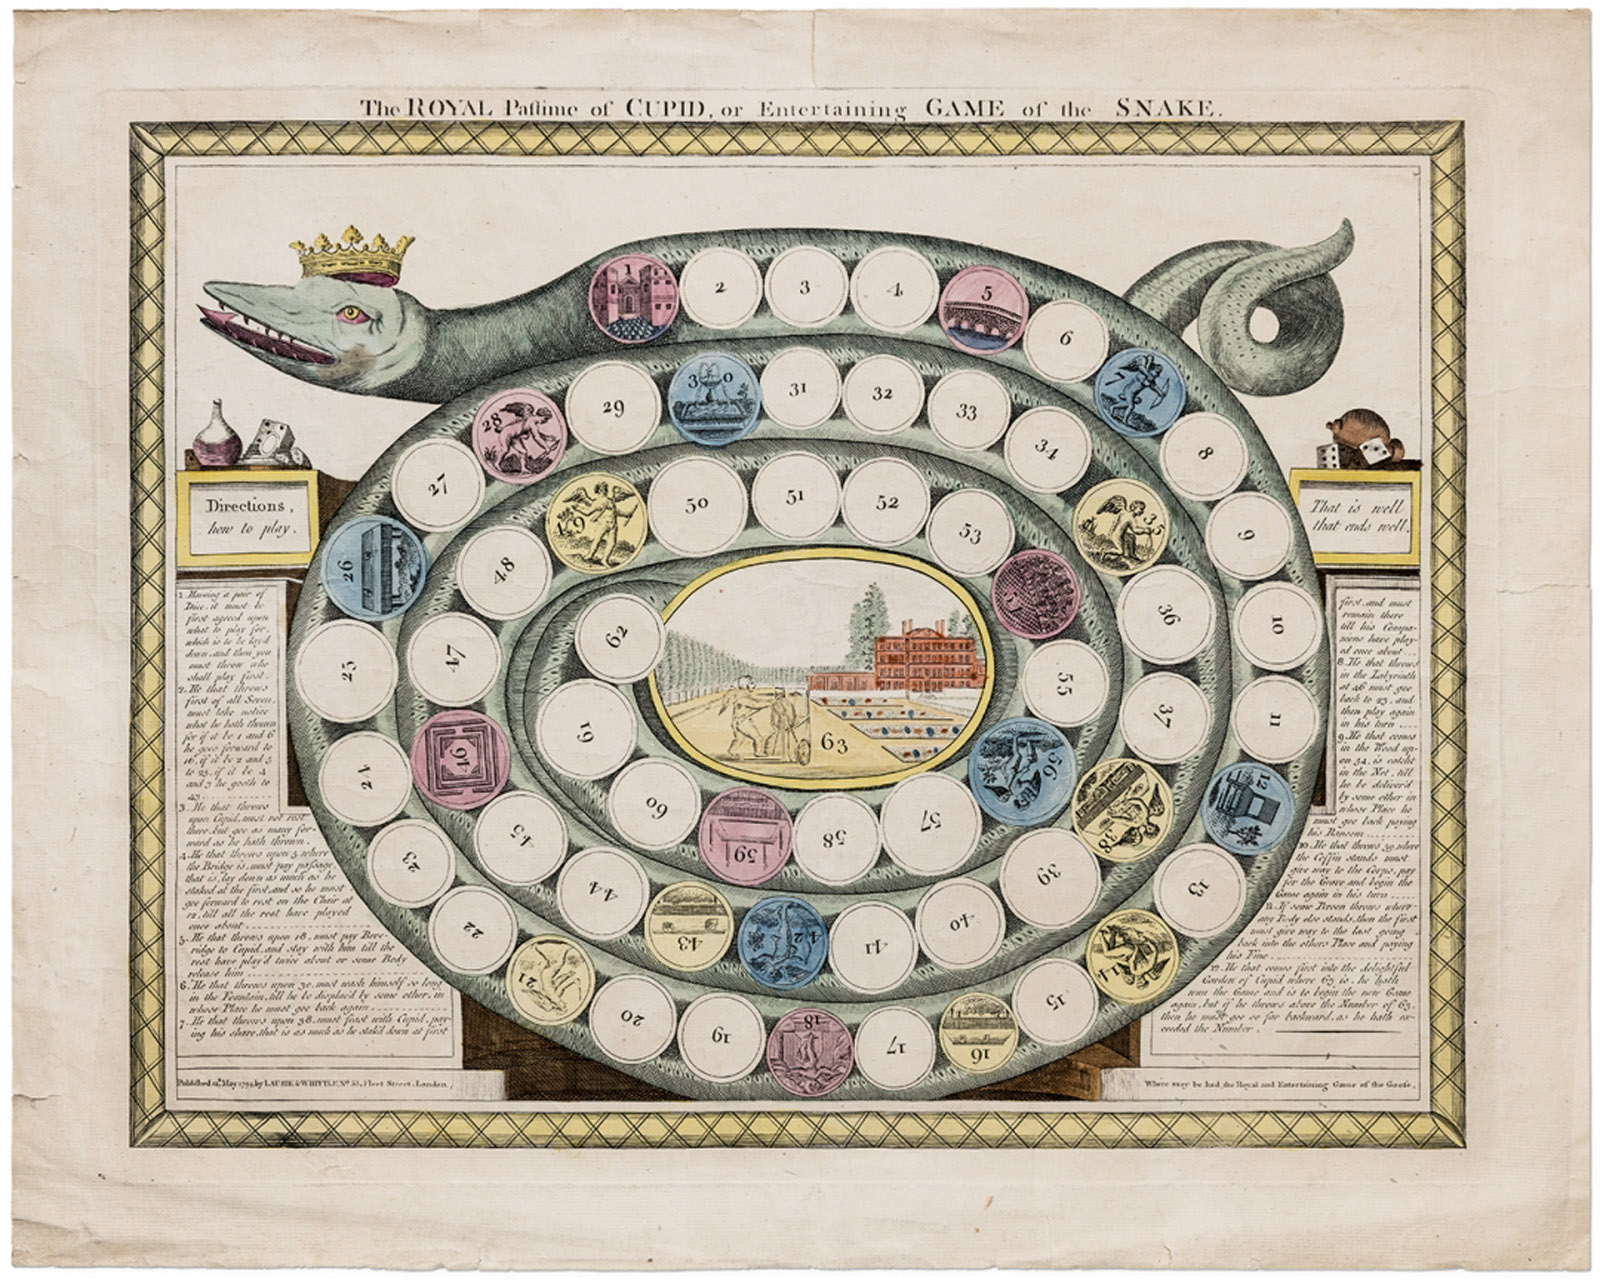 """The Royal Pastime of Cupid, or Entertaining Game of the Snake"" (1794), published by Robert Laurie and James Whittle (all photos by Antoine Bootz/©Pointed Leaf Press)."